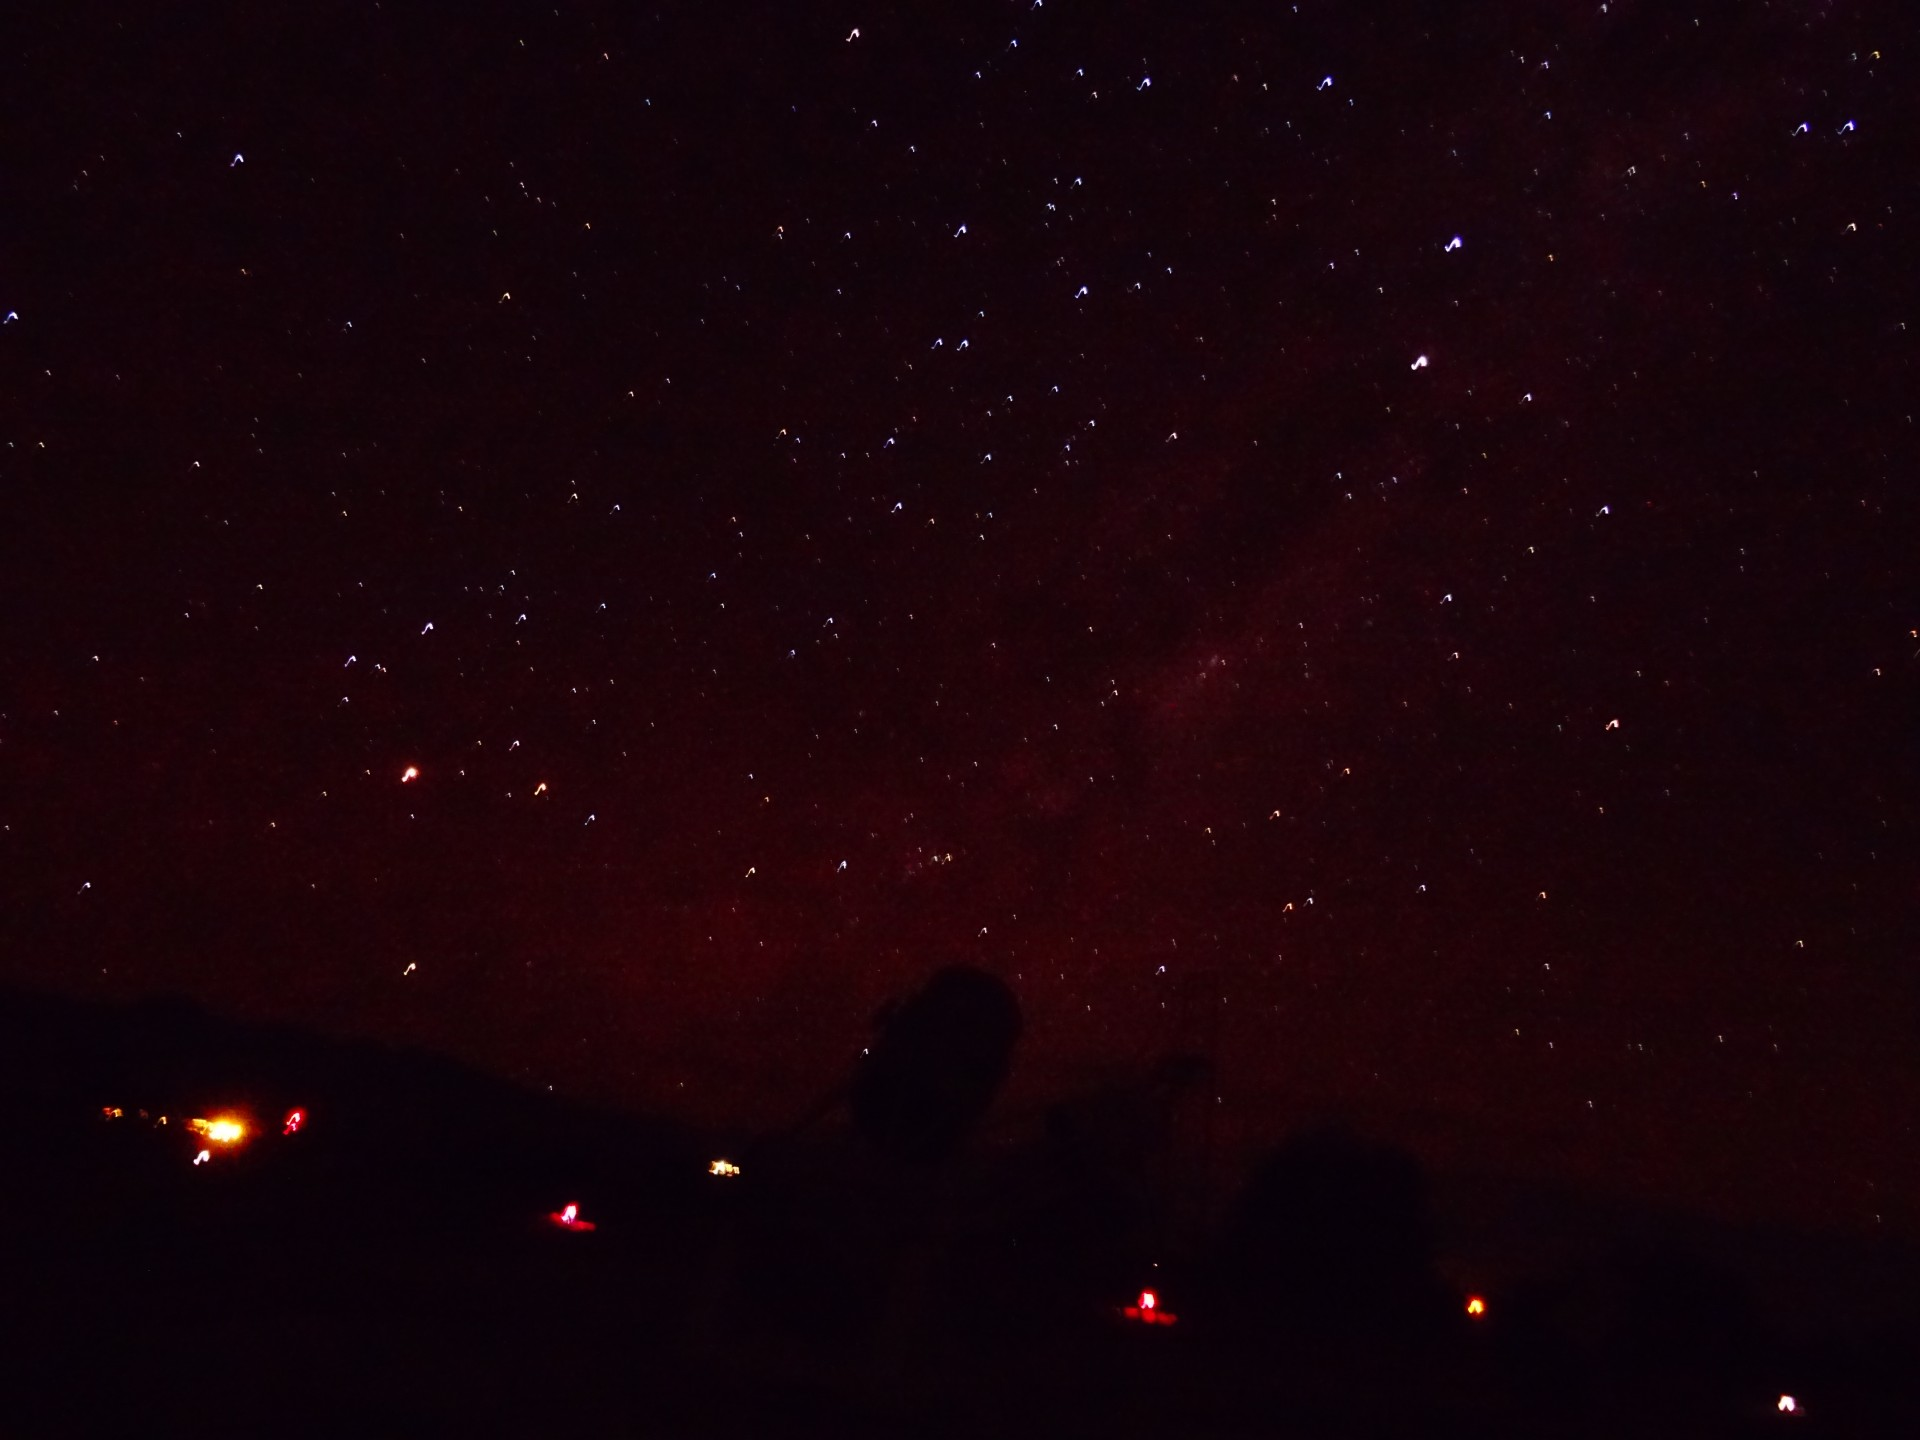 A picture of the stars. Heyy, it's a first attempt!